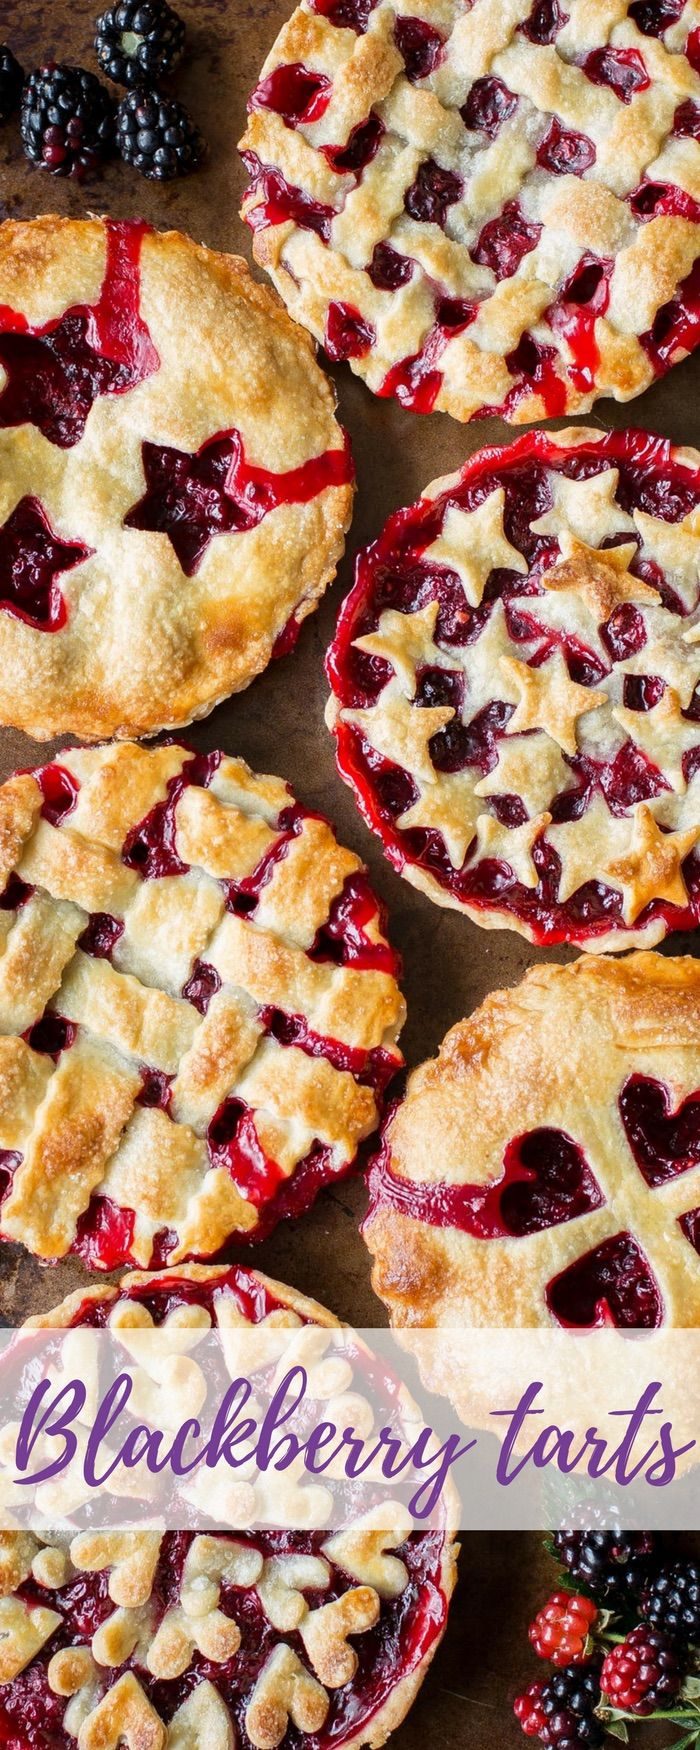 Blackberry Tarts Recipe Desserts Summer Pie Dessert Recipes